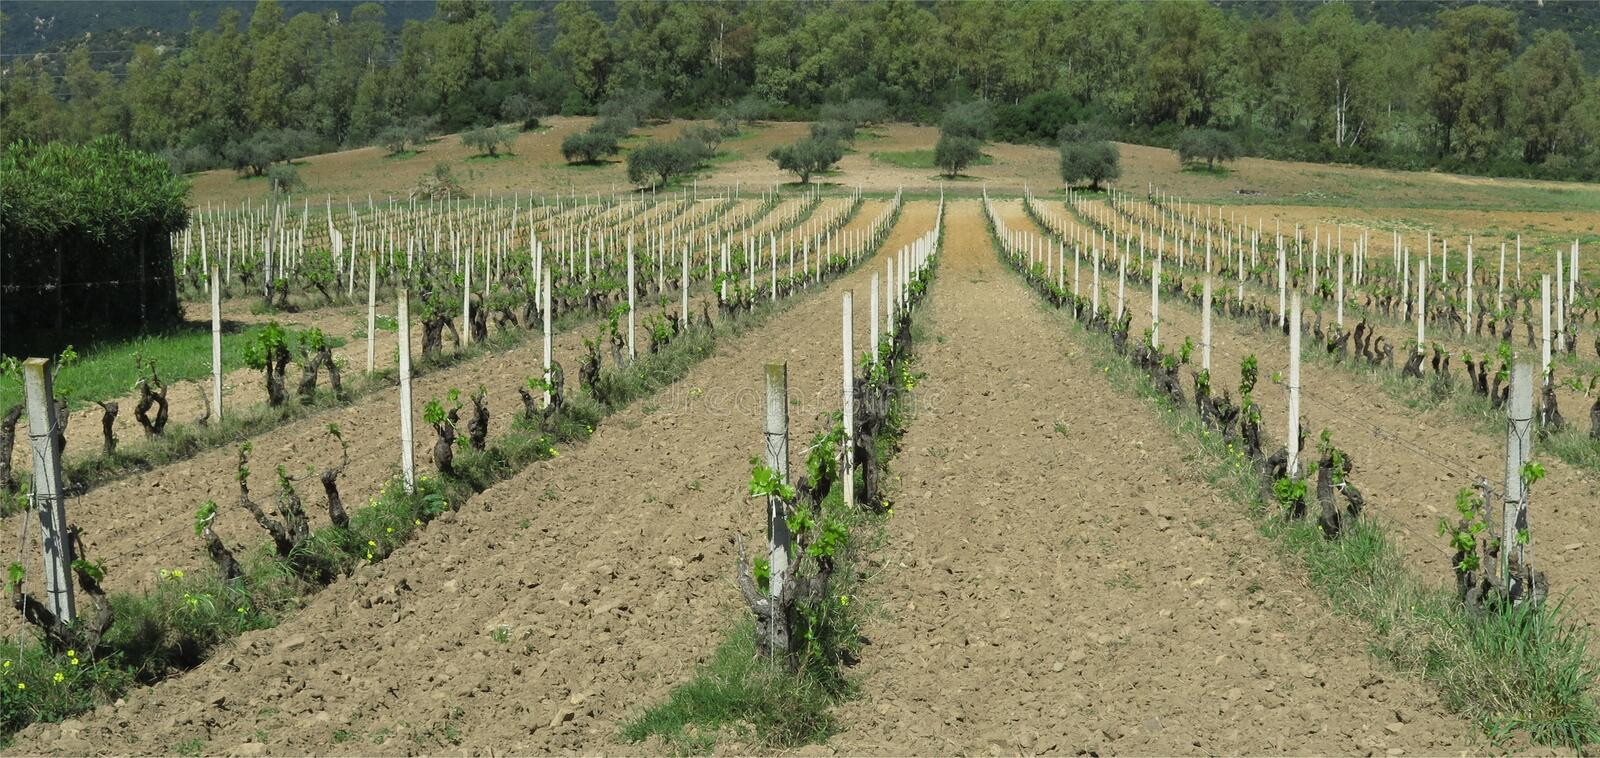 Vineyard in April. Vineyard of Cannonau in a sunny day of April royalty free stock image